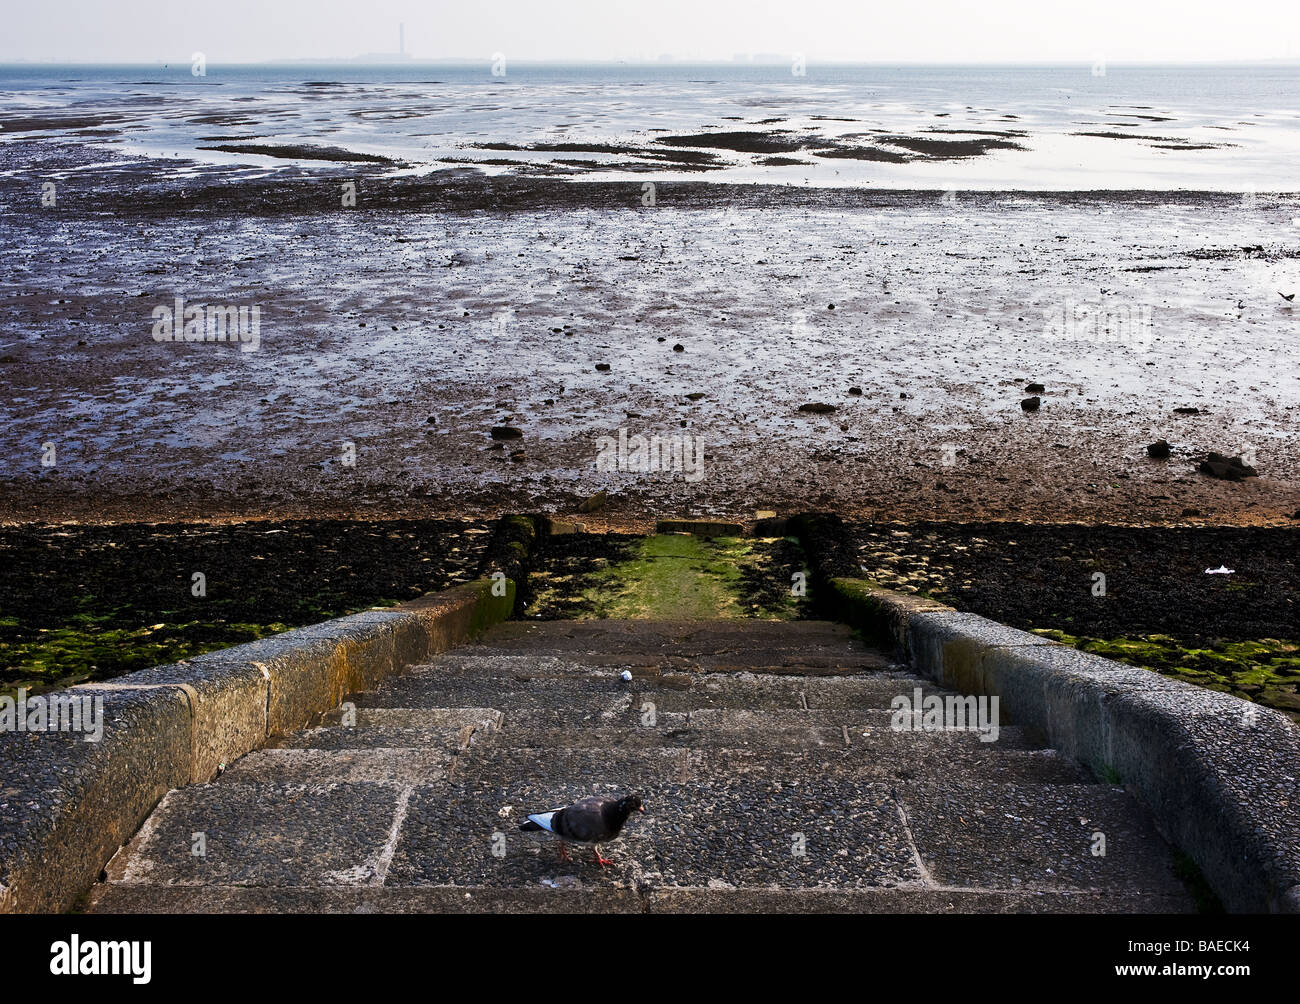 A pigeon on concrete steps leading down to the beach at Southend on Sea in Essex.  Photo by Gordon Scammell - Stock Image